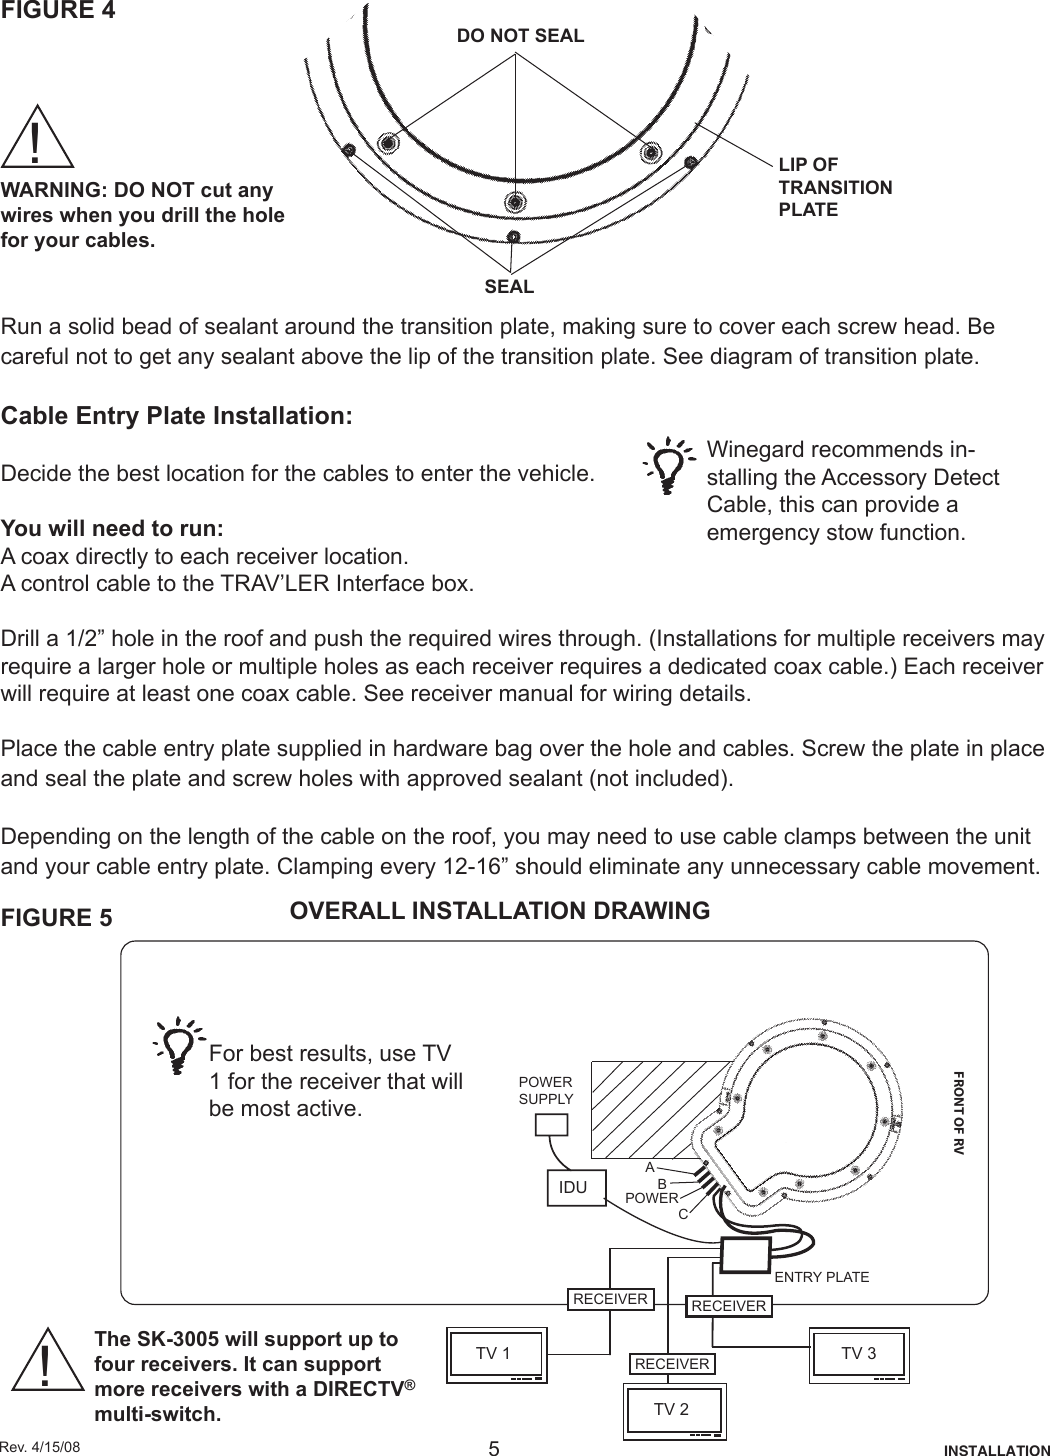 Winegard Satellite Tv System Sk 3005 Users Manual Wiring Diagram Page 5 Of 12